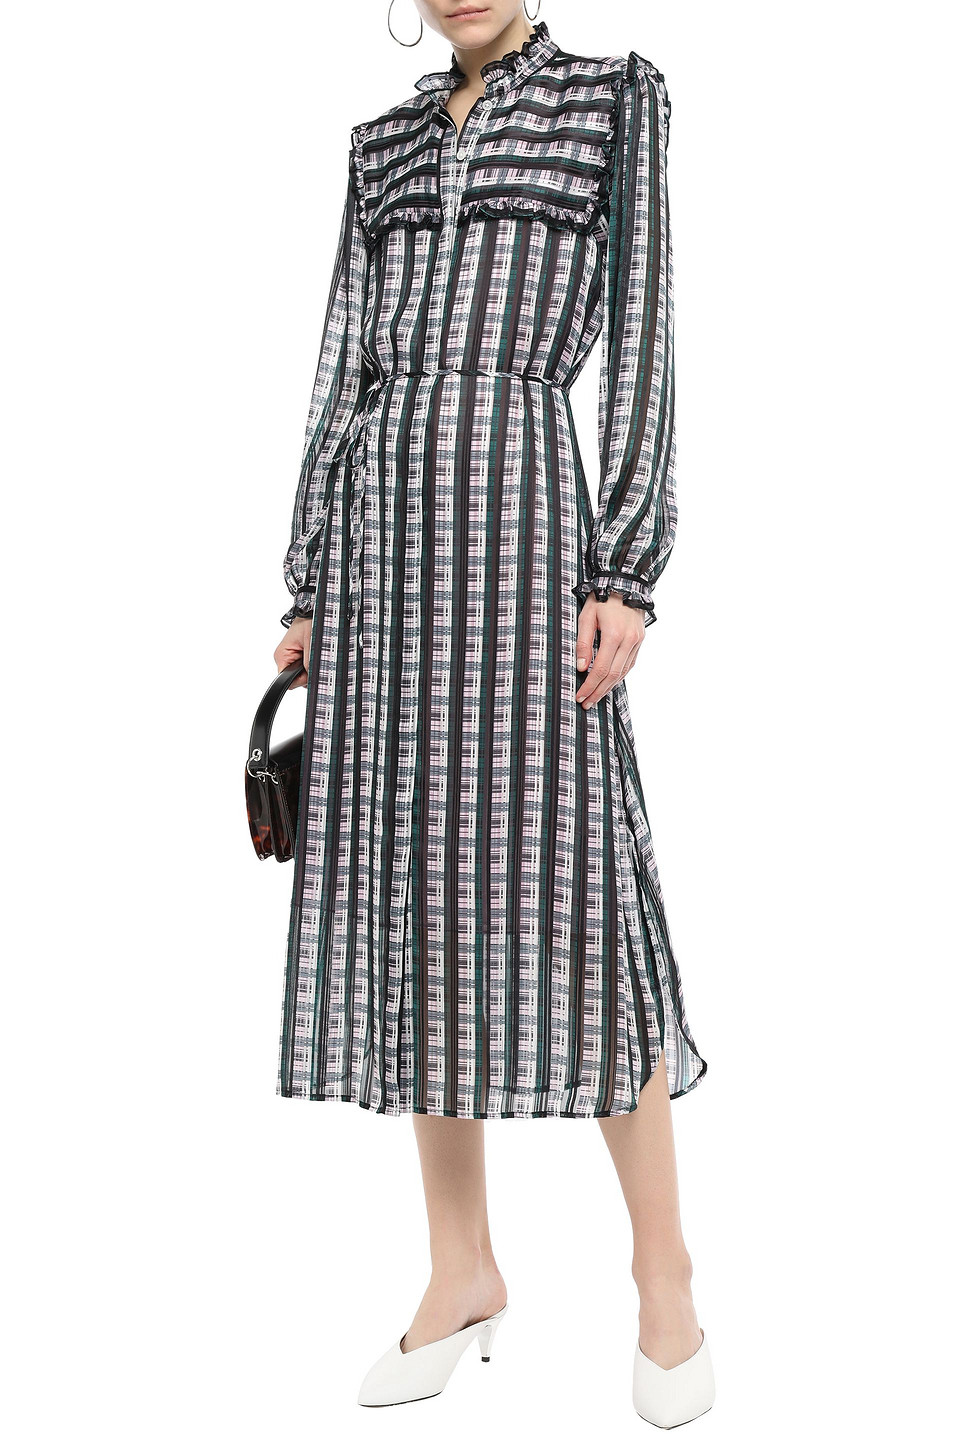 Jason Wu | Jason Wu Woman Ruffle-trimmed Checked Organza-jacquard Midi Dress Black | Clouty